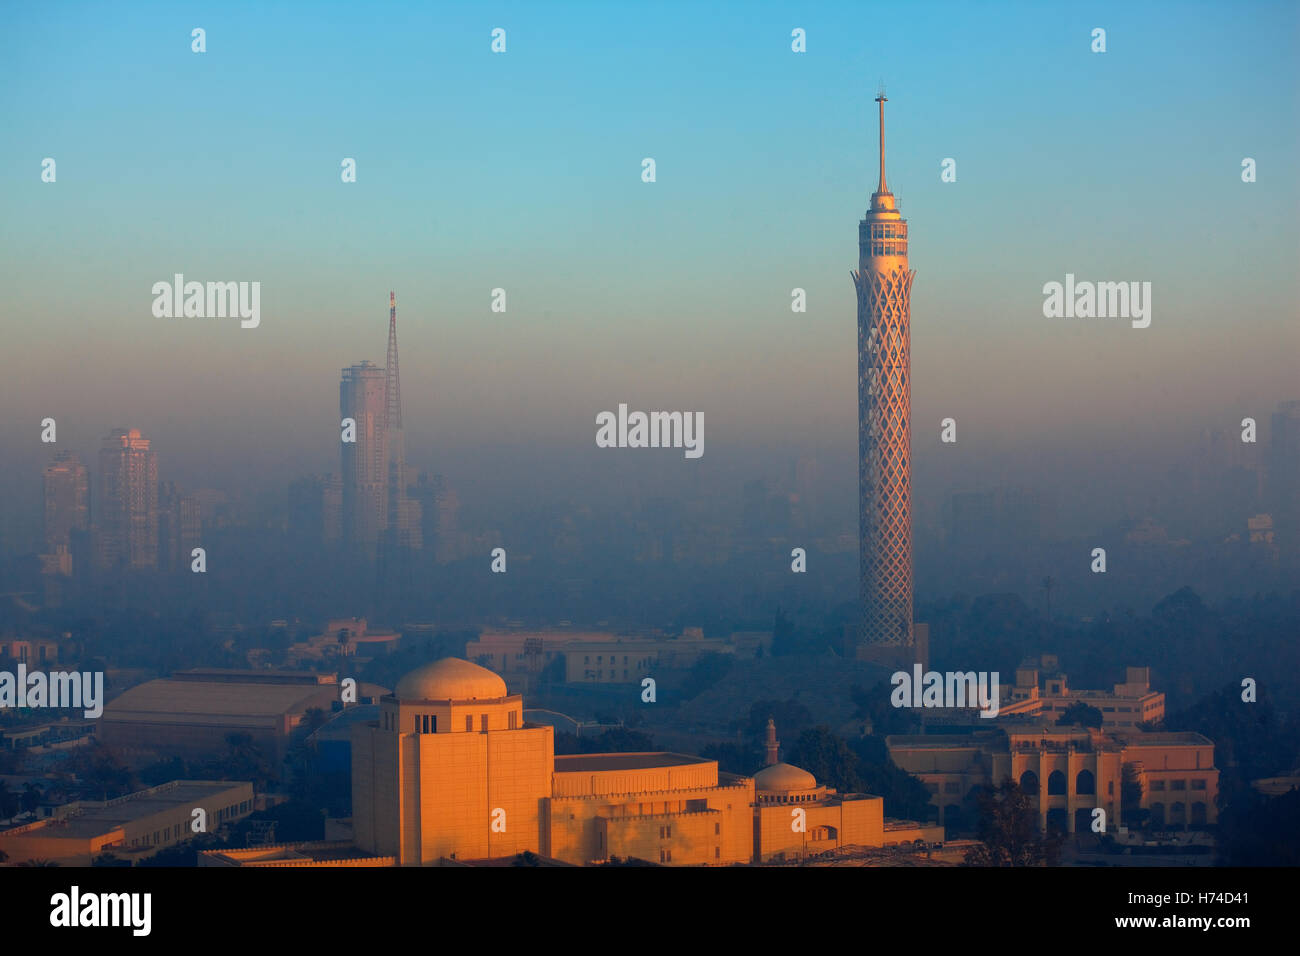 TV tower and heavy pollution in Cairo, Egypt - Stock Image